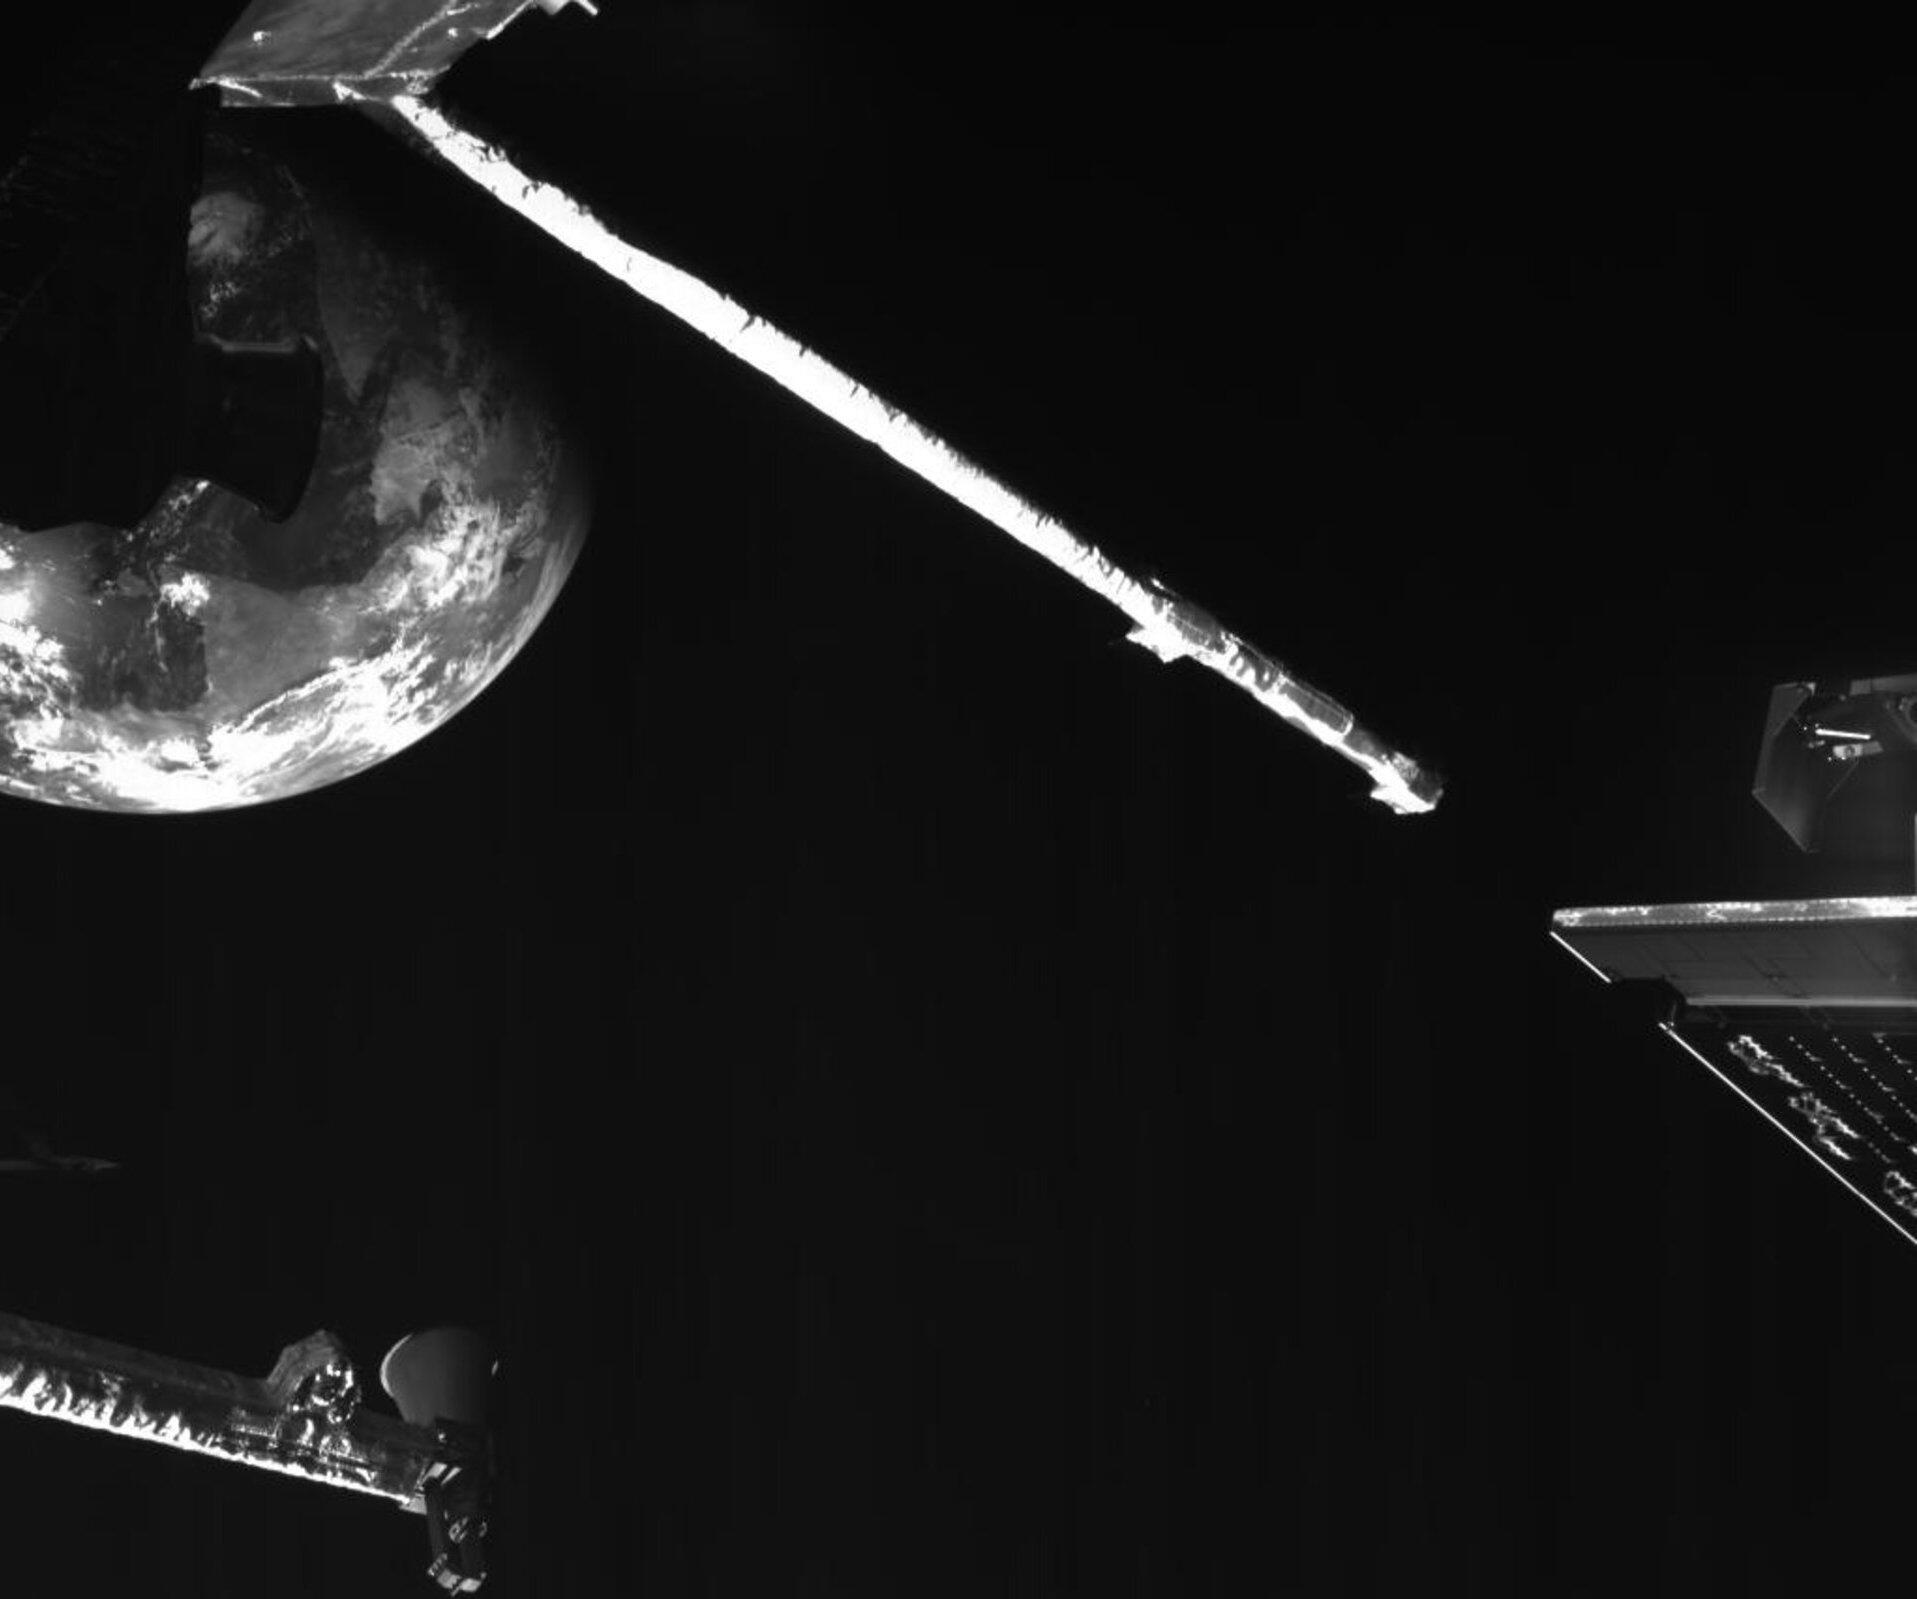 bepicolombo-s-close-up-of-earth-during-flyby-pillars